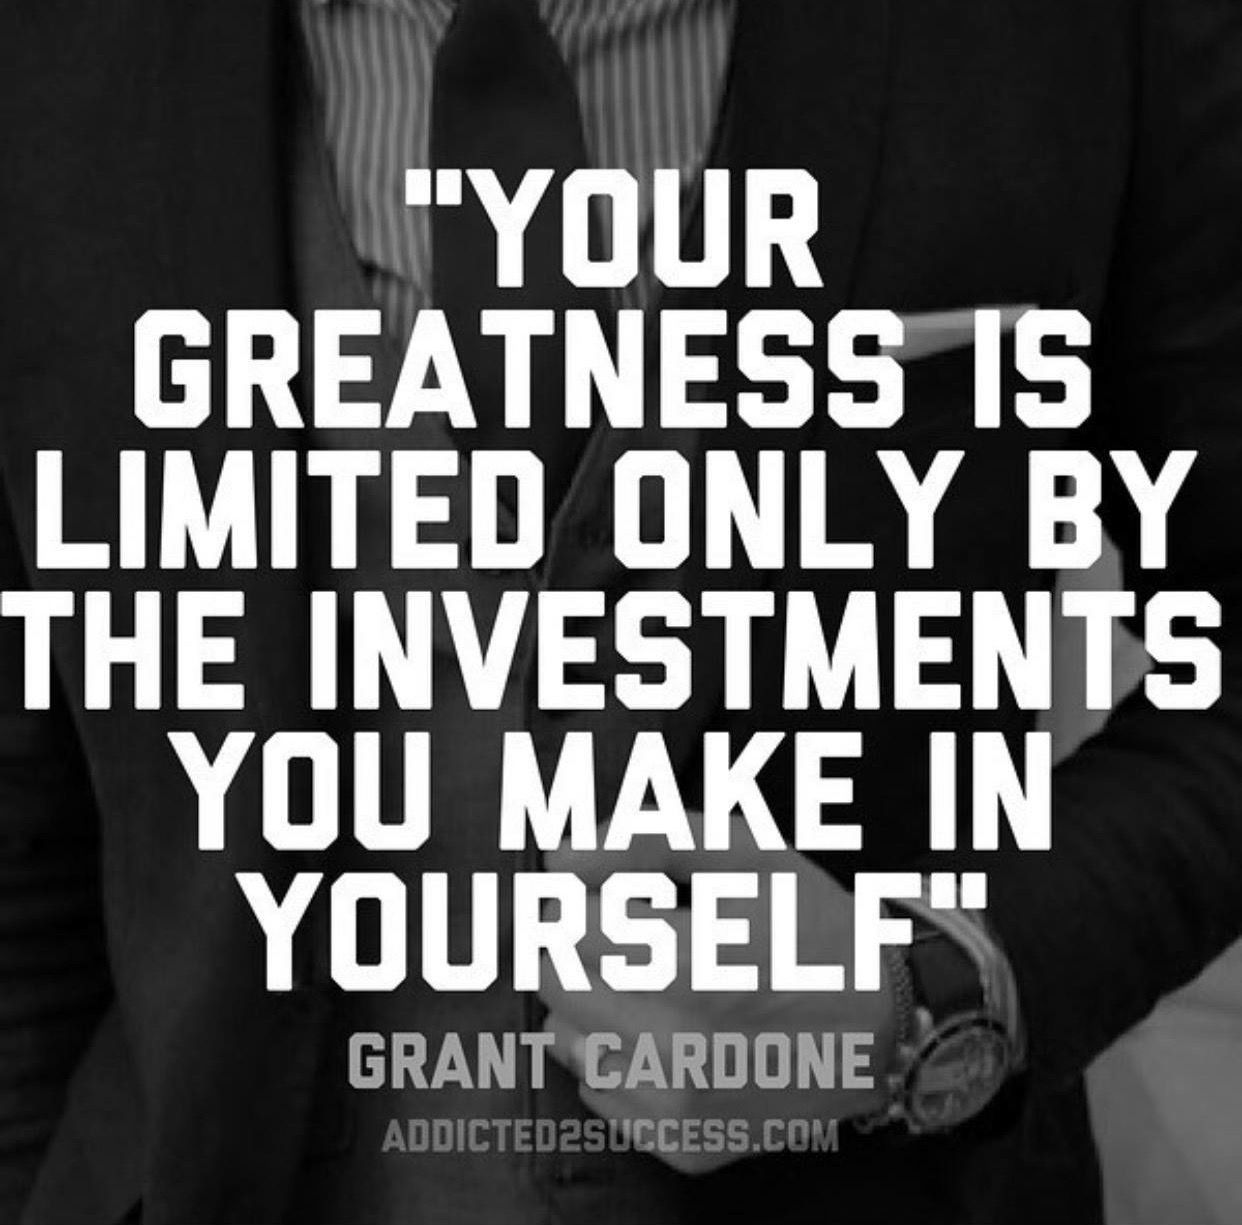 Grant Cardone Quotes: Pin By Chastity On Life Vantage